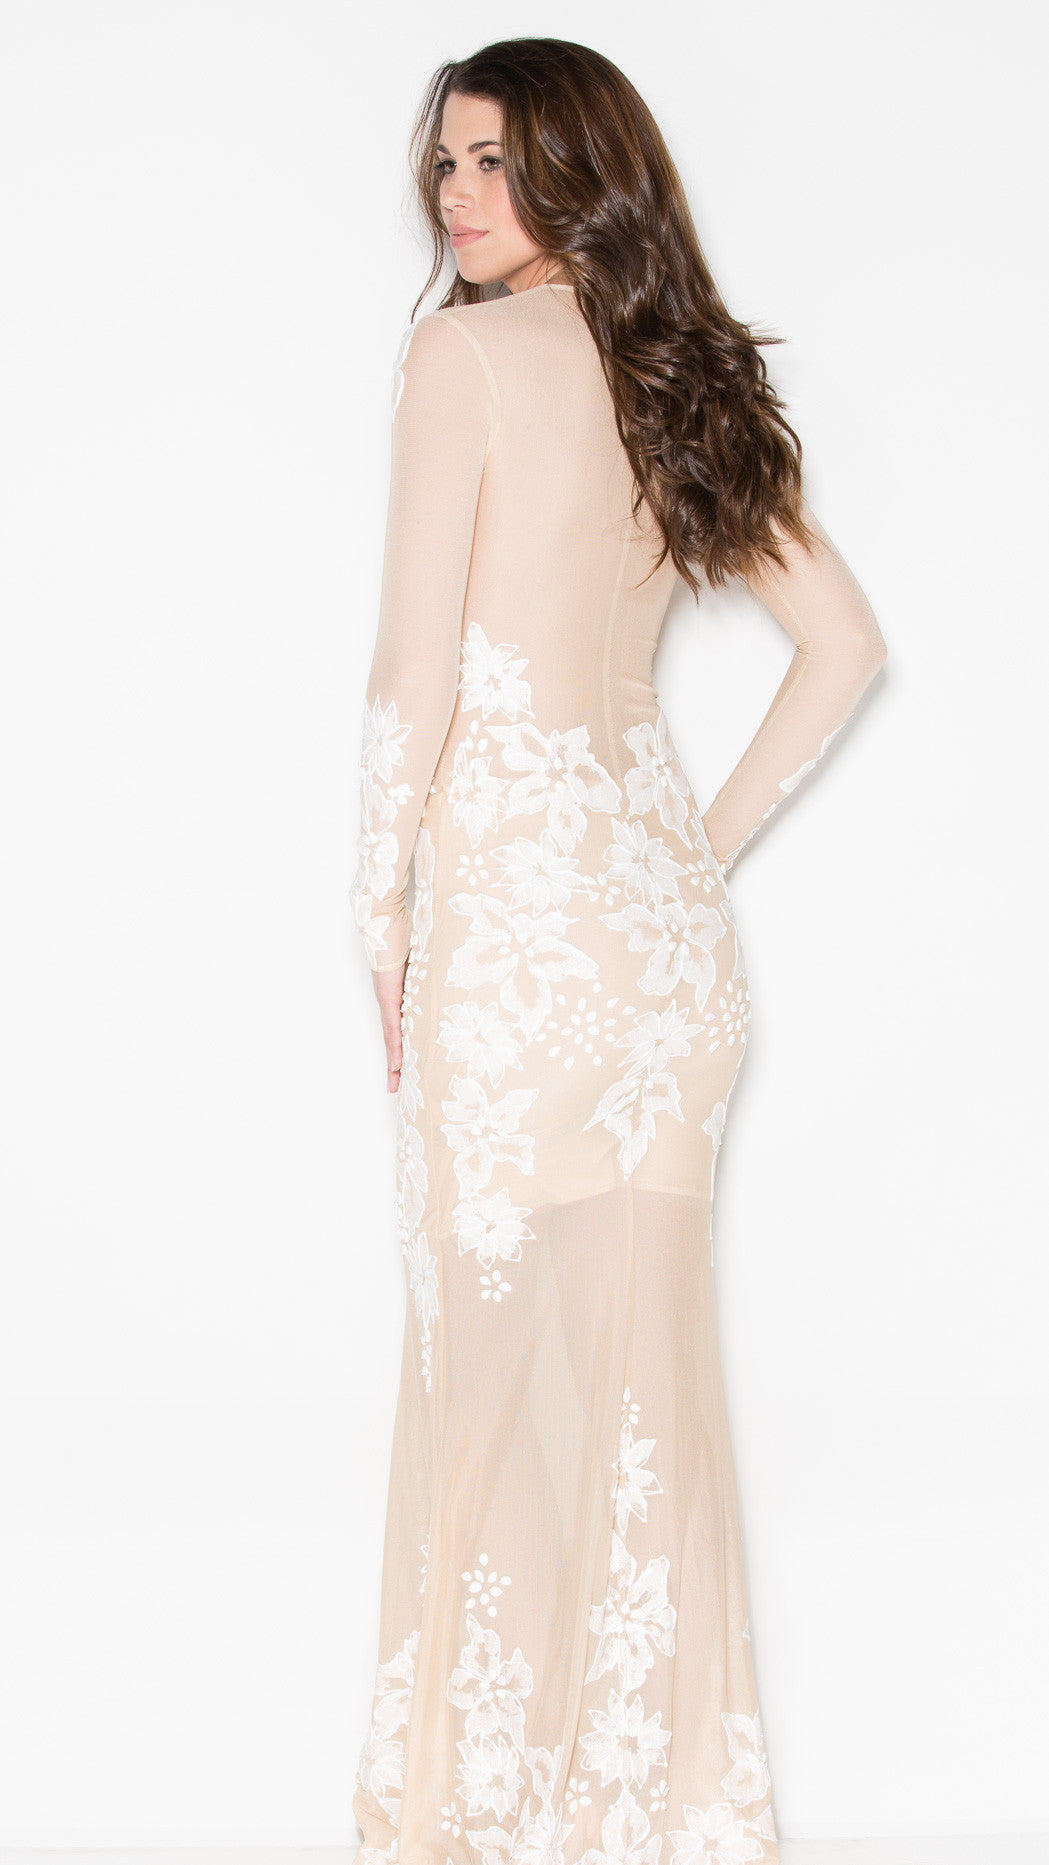 LACIE GOWN IN NUDE AND WHITE